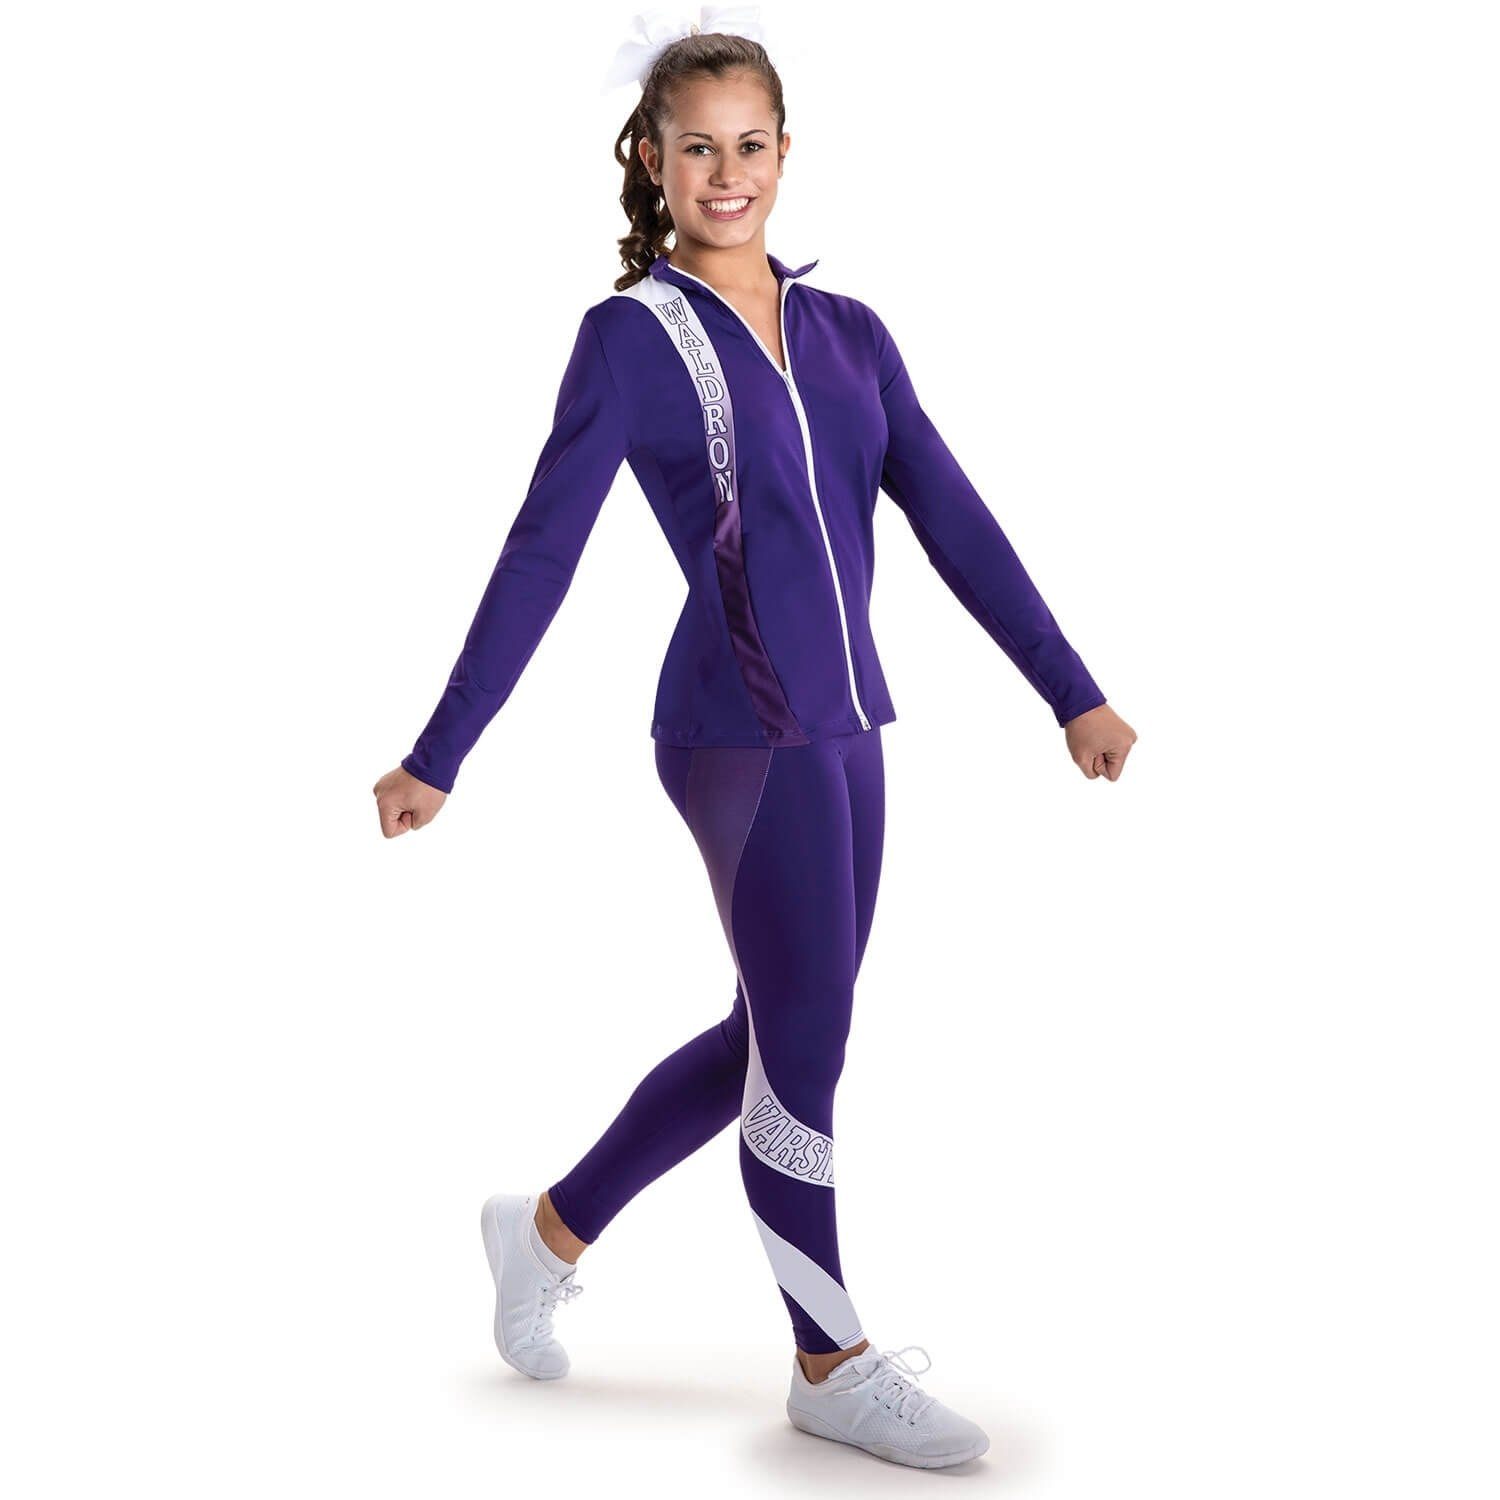 Motionwear Practice Wear Stretch Capris